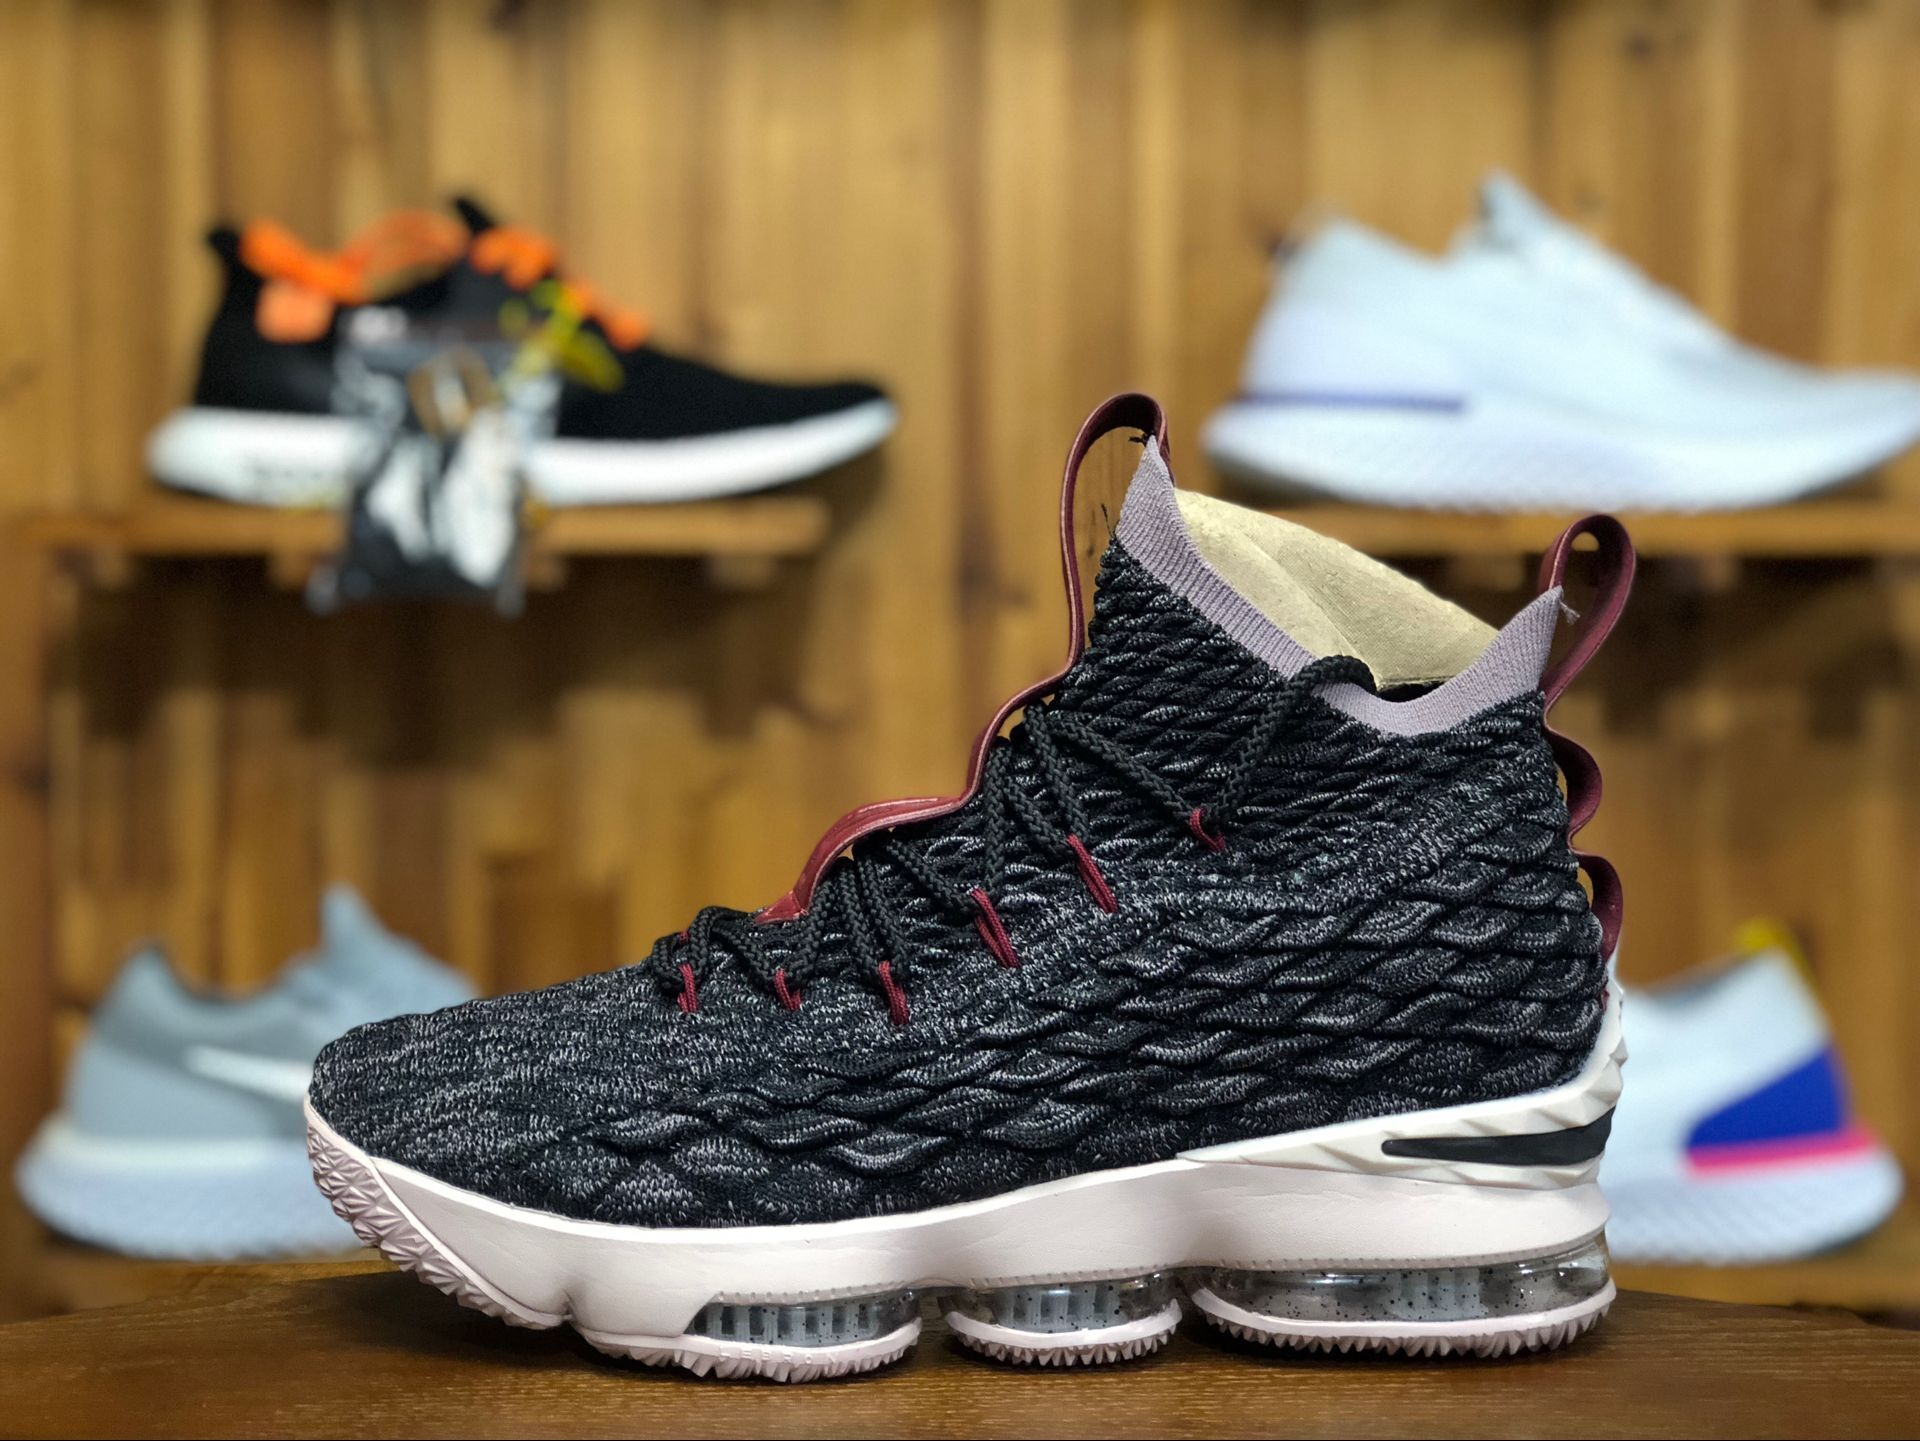 717cc26e17d098 Purchase this Nike Lebron 15 EP Black Taupe Grey-Team Red shoes in men s  size.